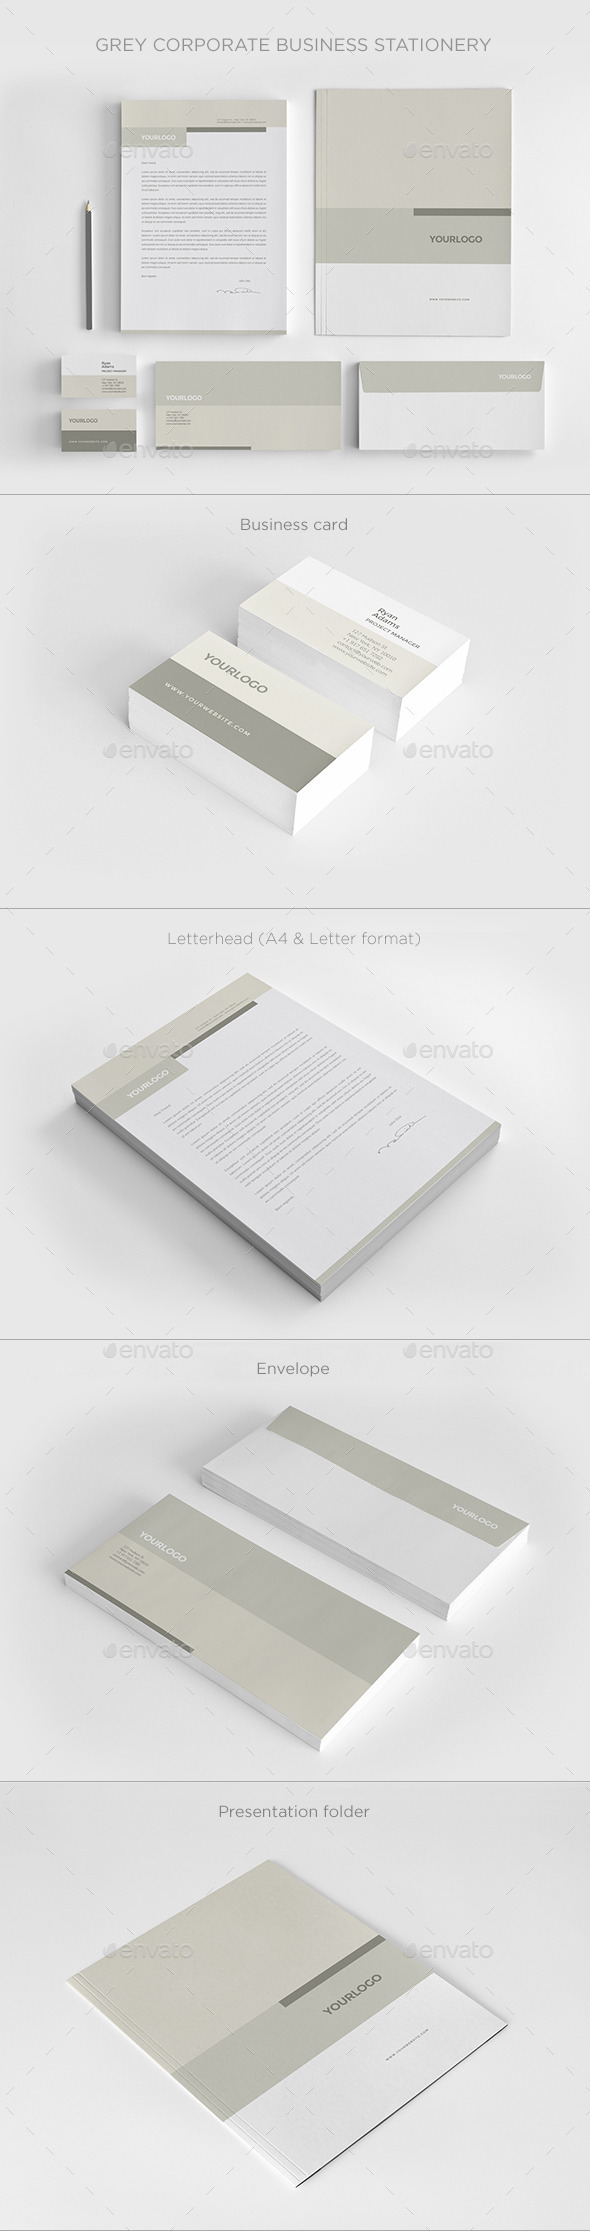 Grey Corporate Business Stationery - Stationery Print Templates